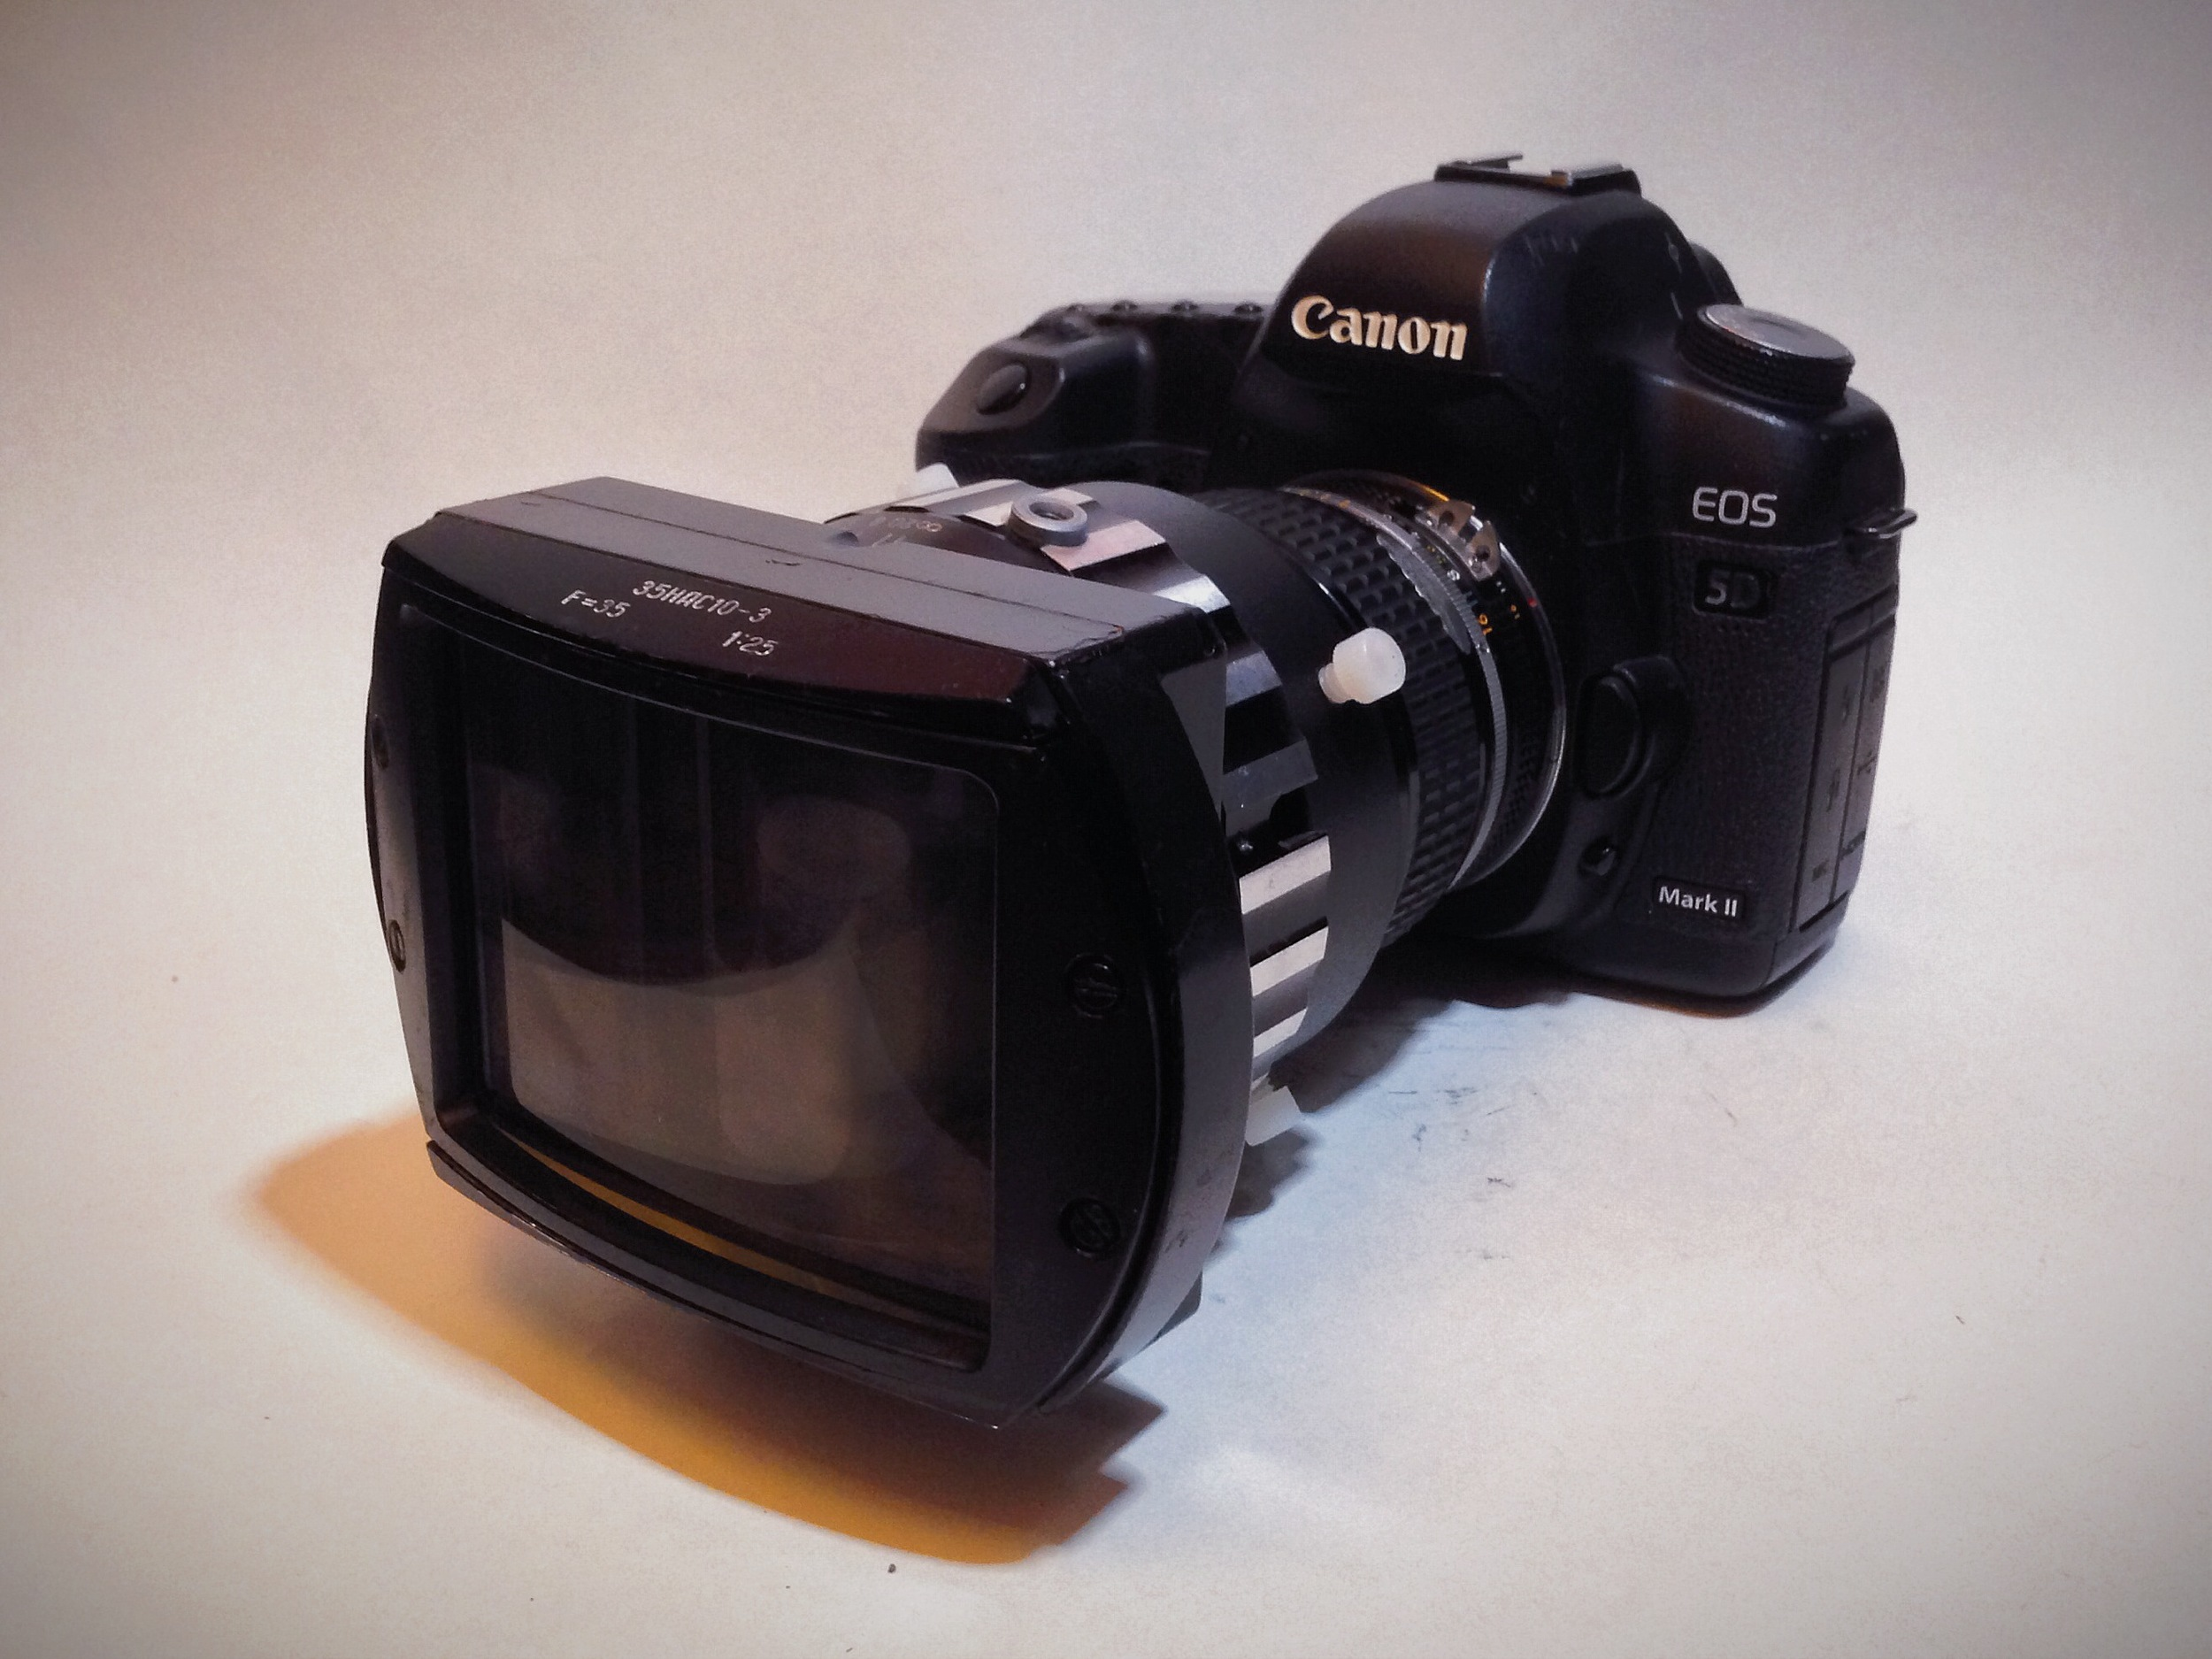 Lomo Anamorphic Attachment with 85mm Nikon f2.0 on the Canon 5D